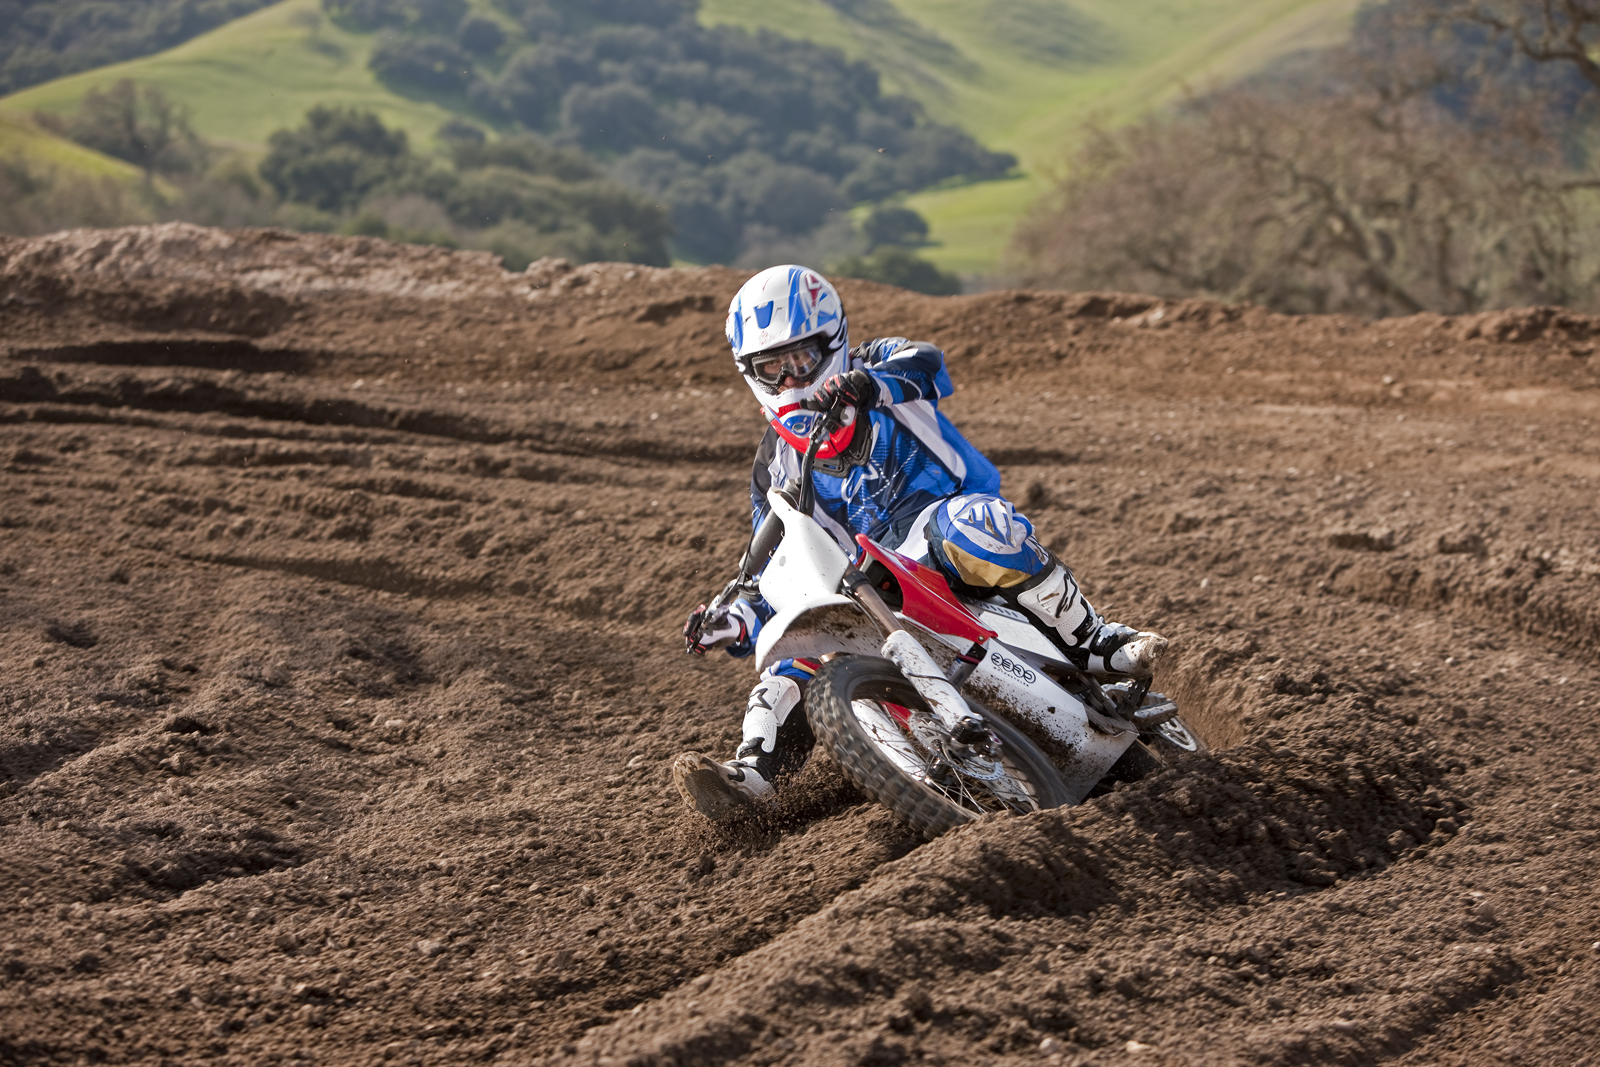 '.2010 Zero MX Electric Motorcycle: Zaca Station - Speed through Ruts.'